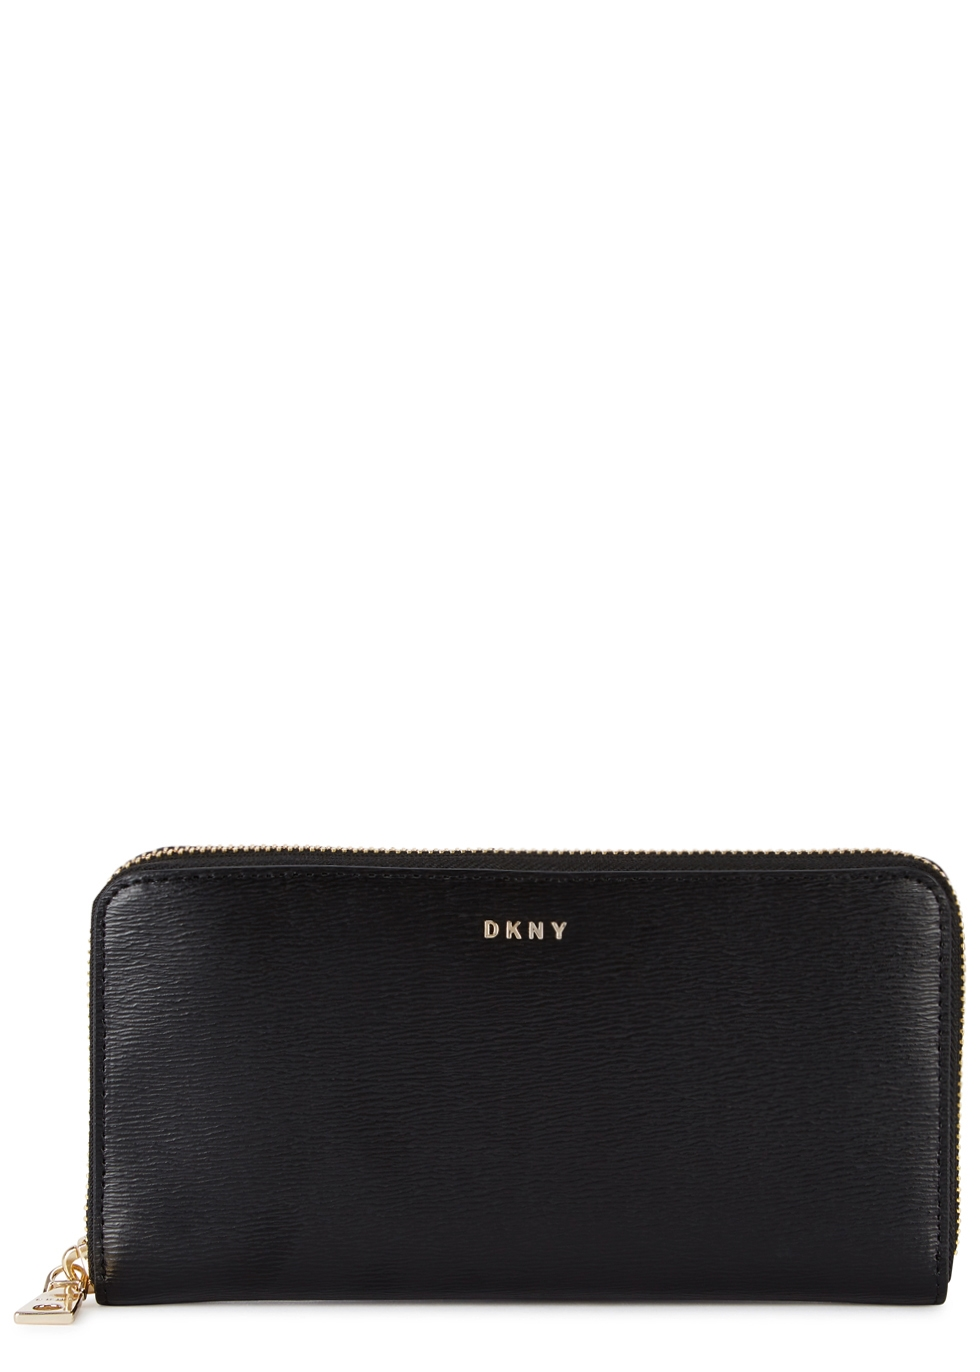 DKNY BRYANT BLACK LEATHER WALLET